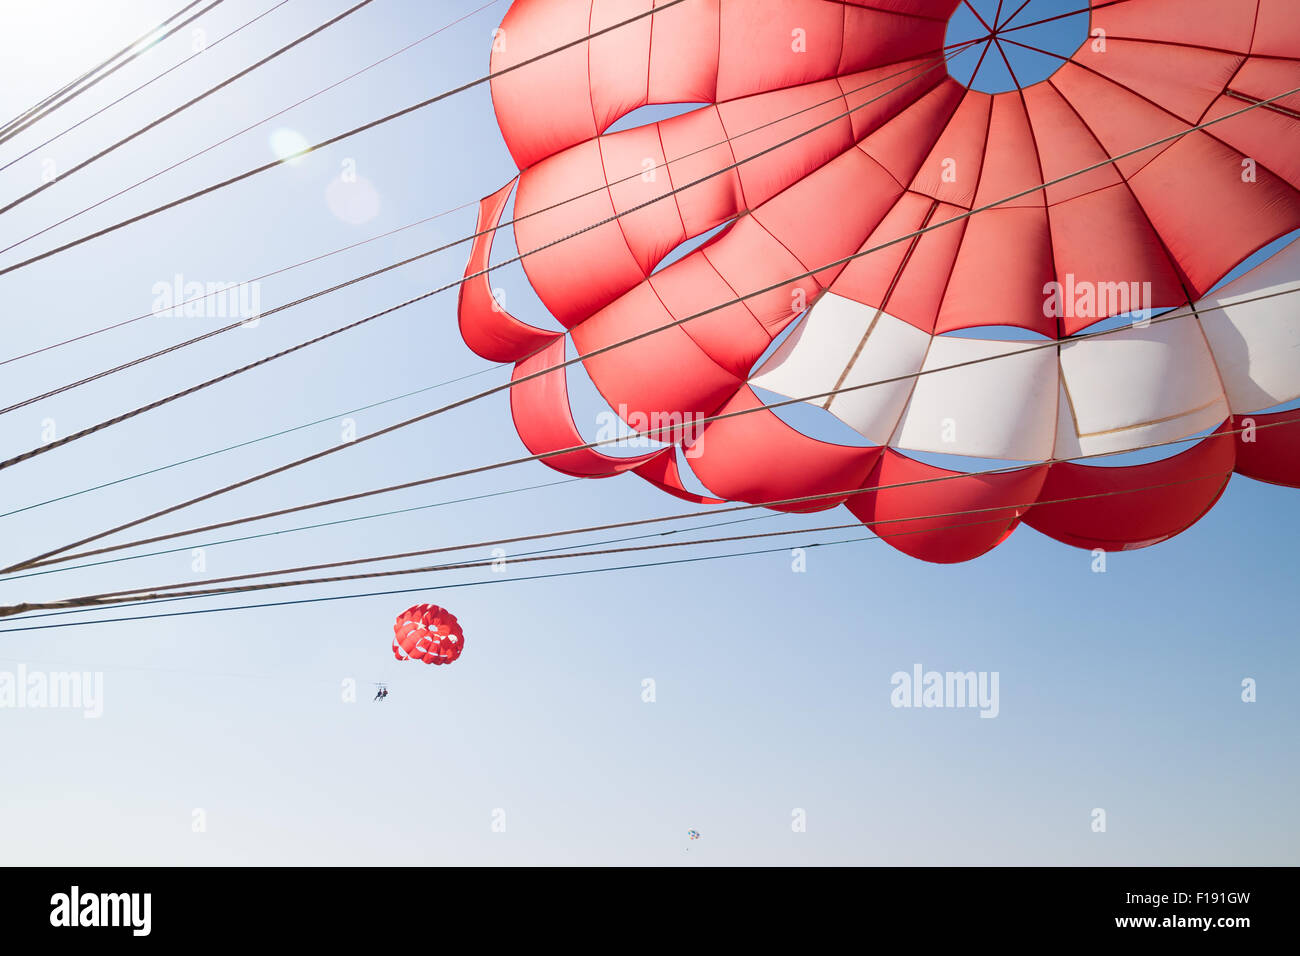 A parasailing parachute, with two other parasailers in the background - Stock Image